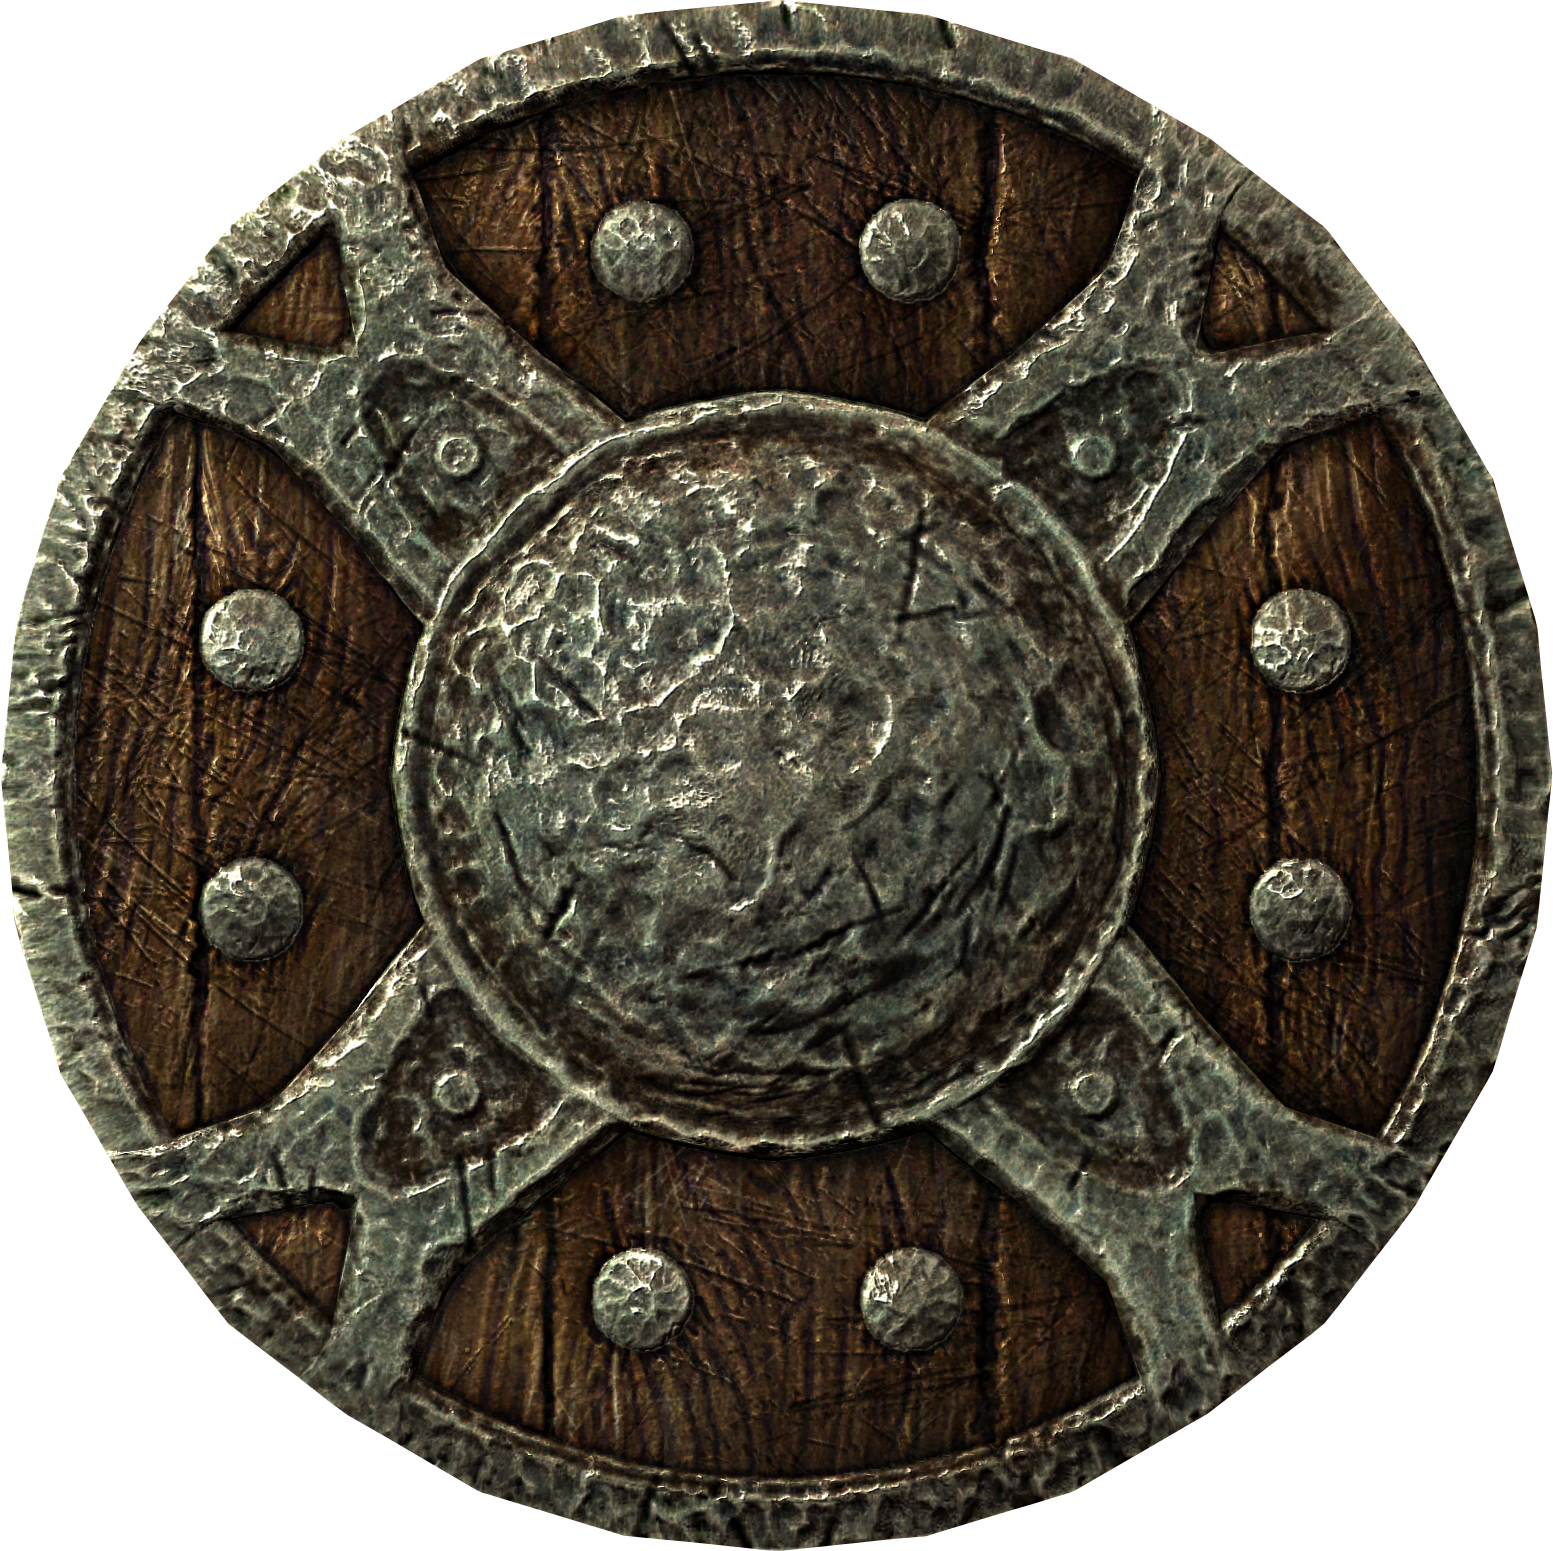 shield, category skyrim shields elder scrolls fandom powered #22836